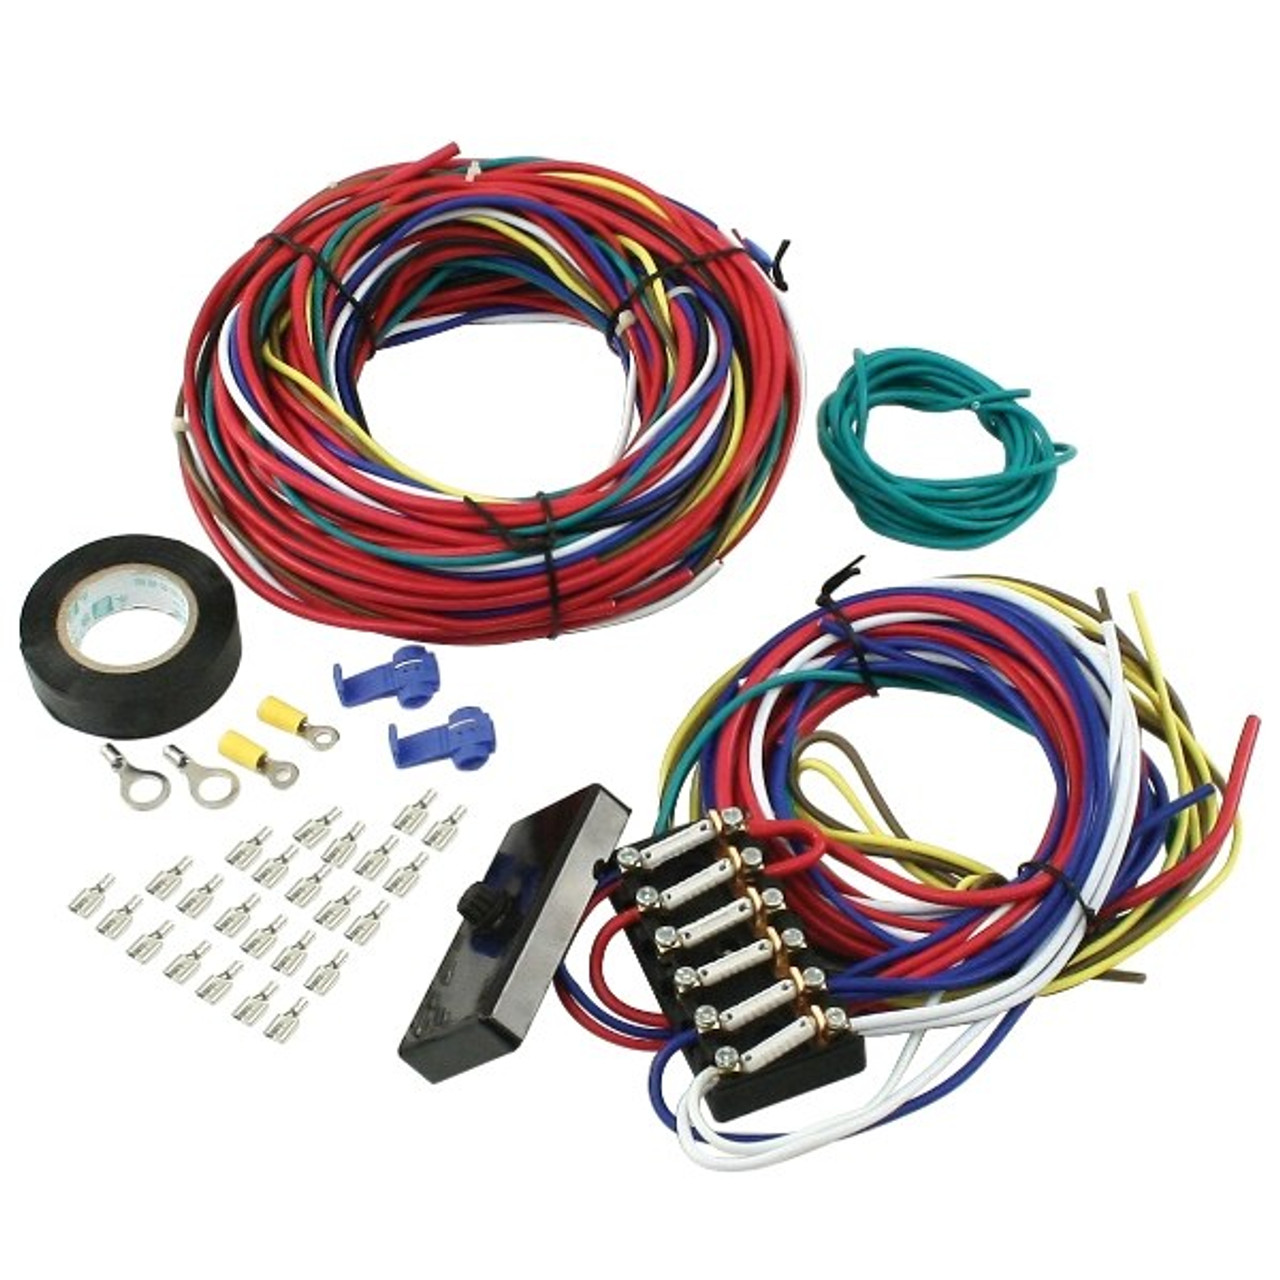 large AC971000__14441.1421968365?c=2 buggy manx wiring harness dune buggy parts, sandrail parts, vw electrical wiring harness at soozxer.org